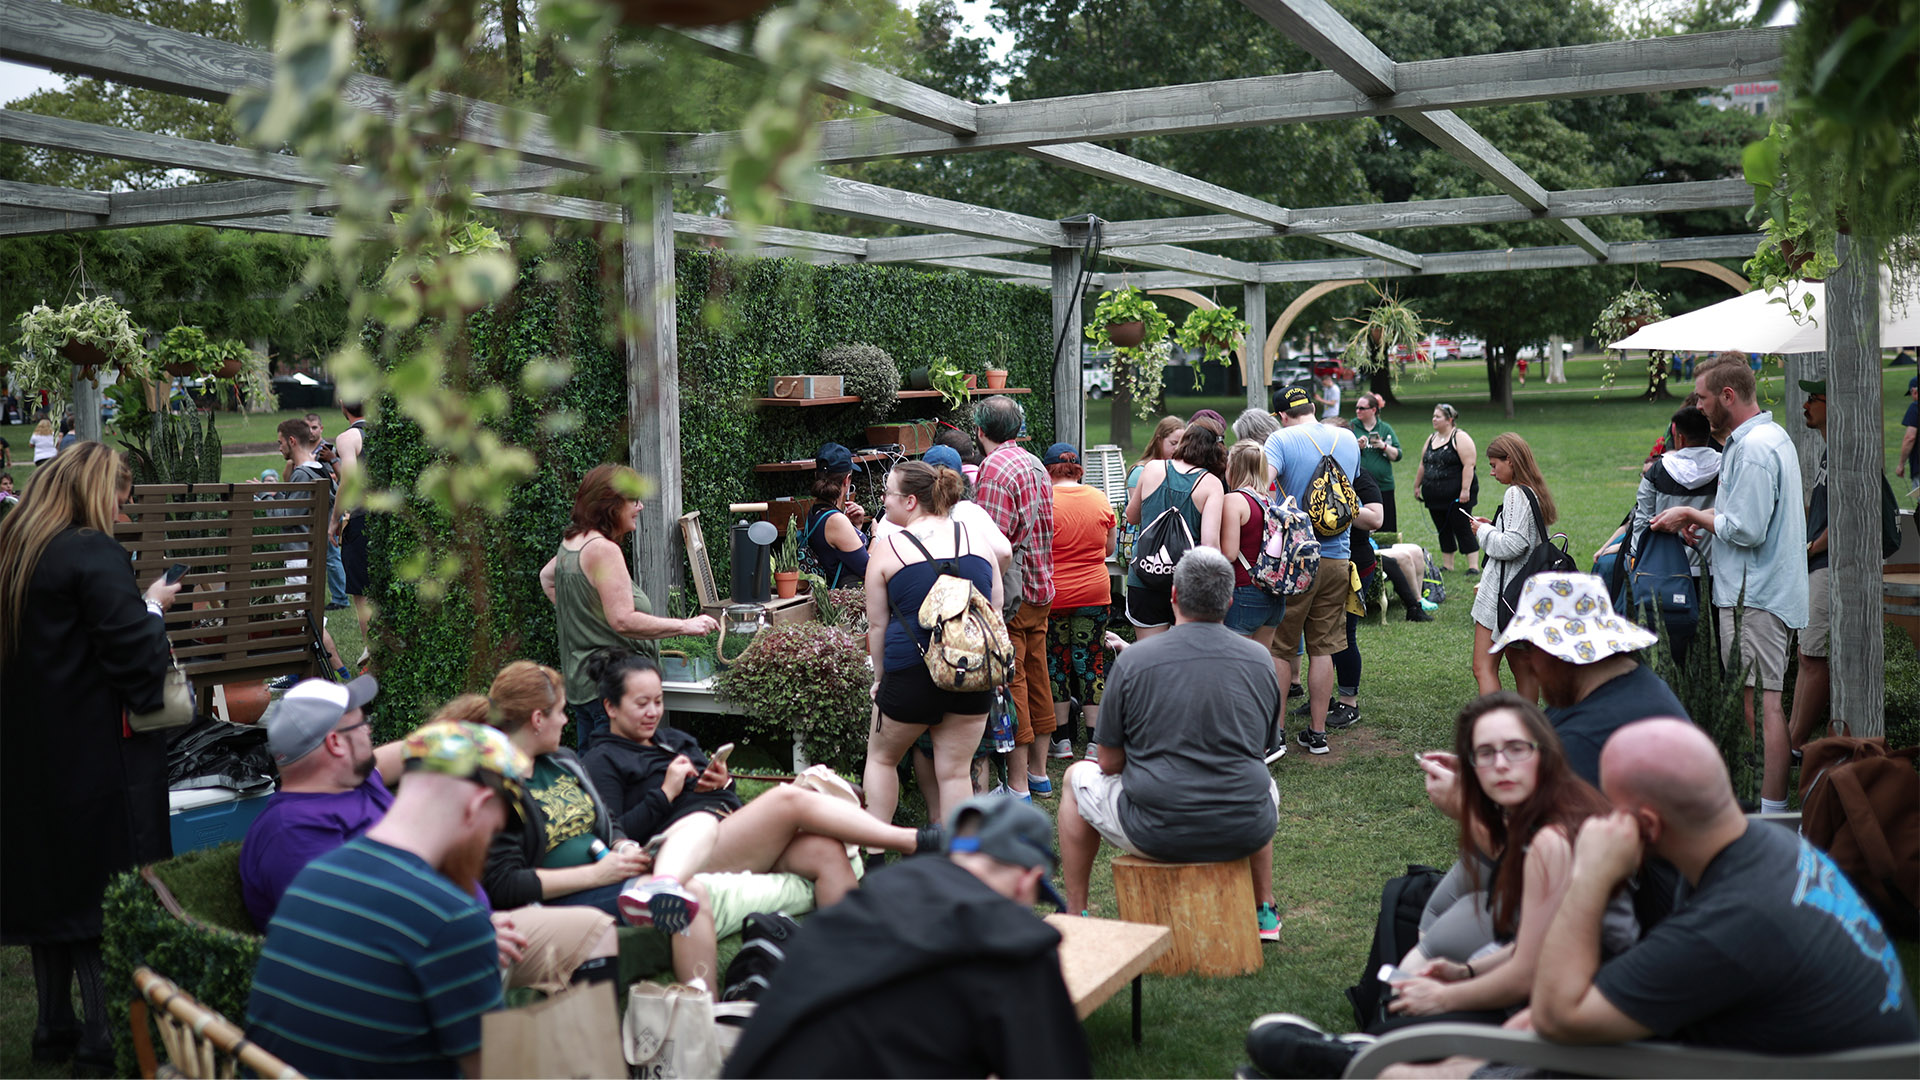 Gamers take a moment to relax and recharge at a Greenhouse lounge.